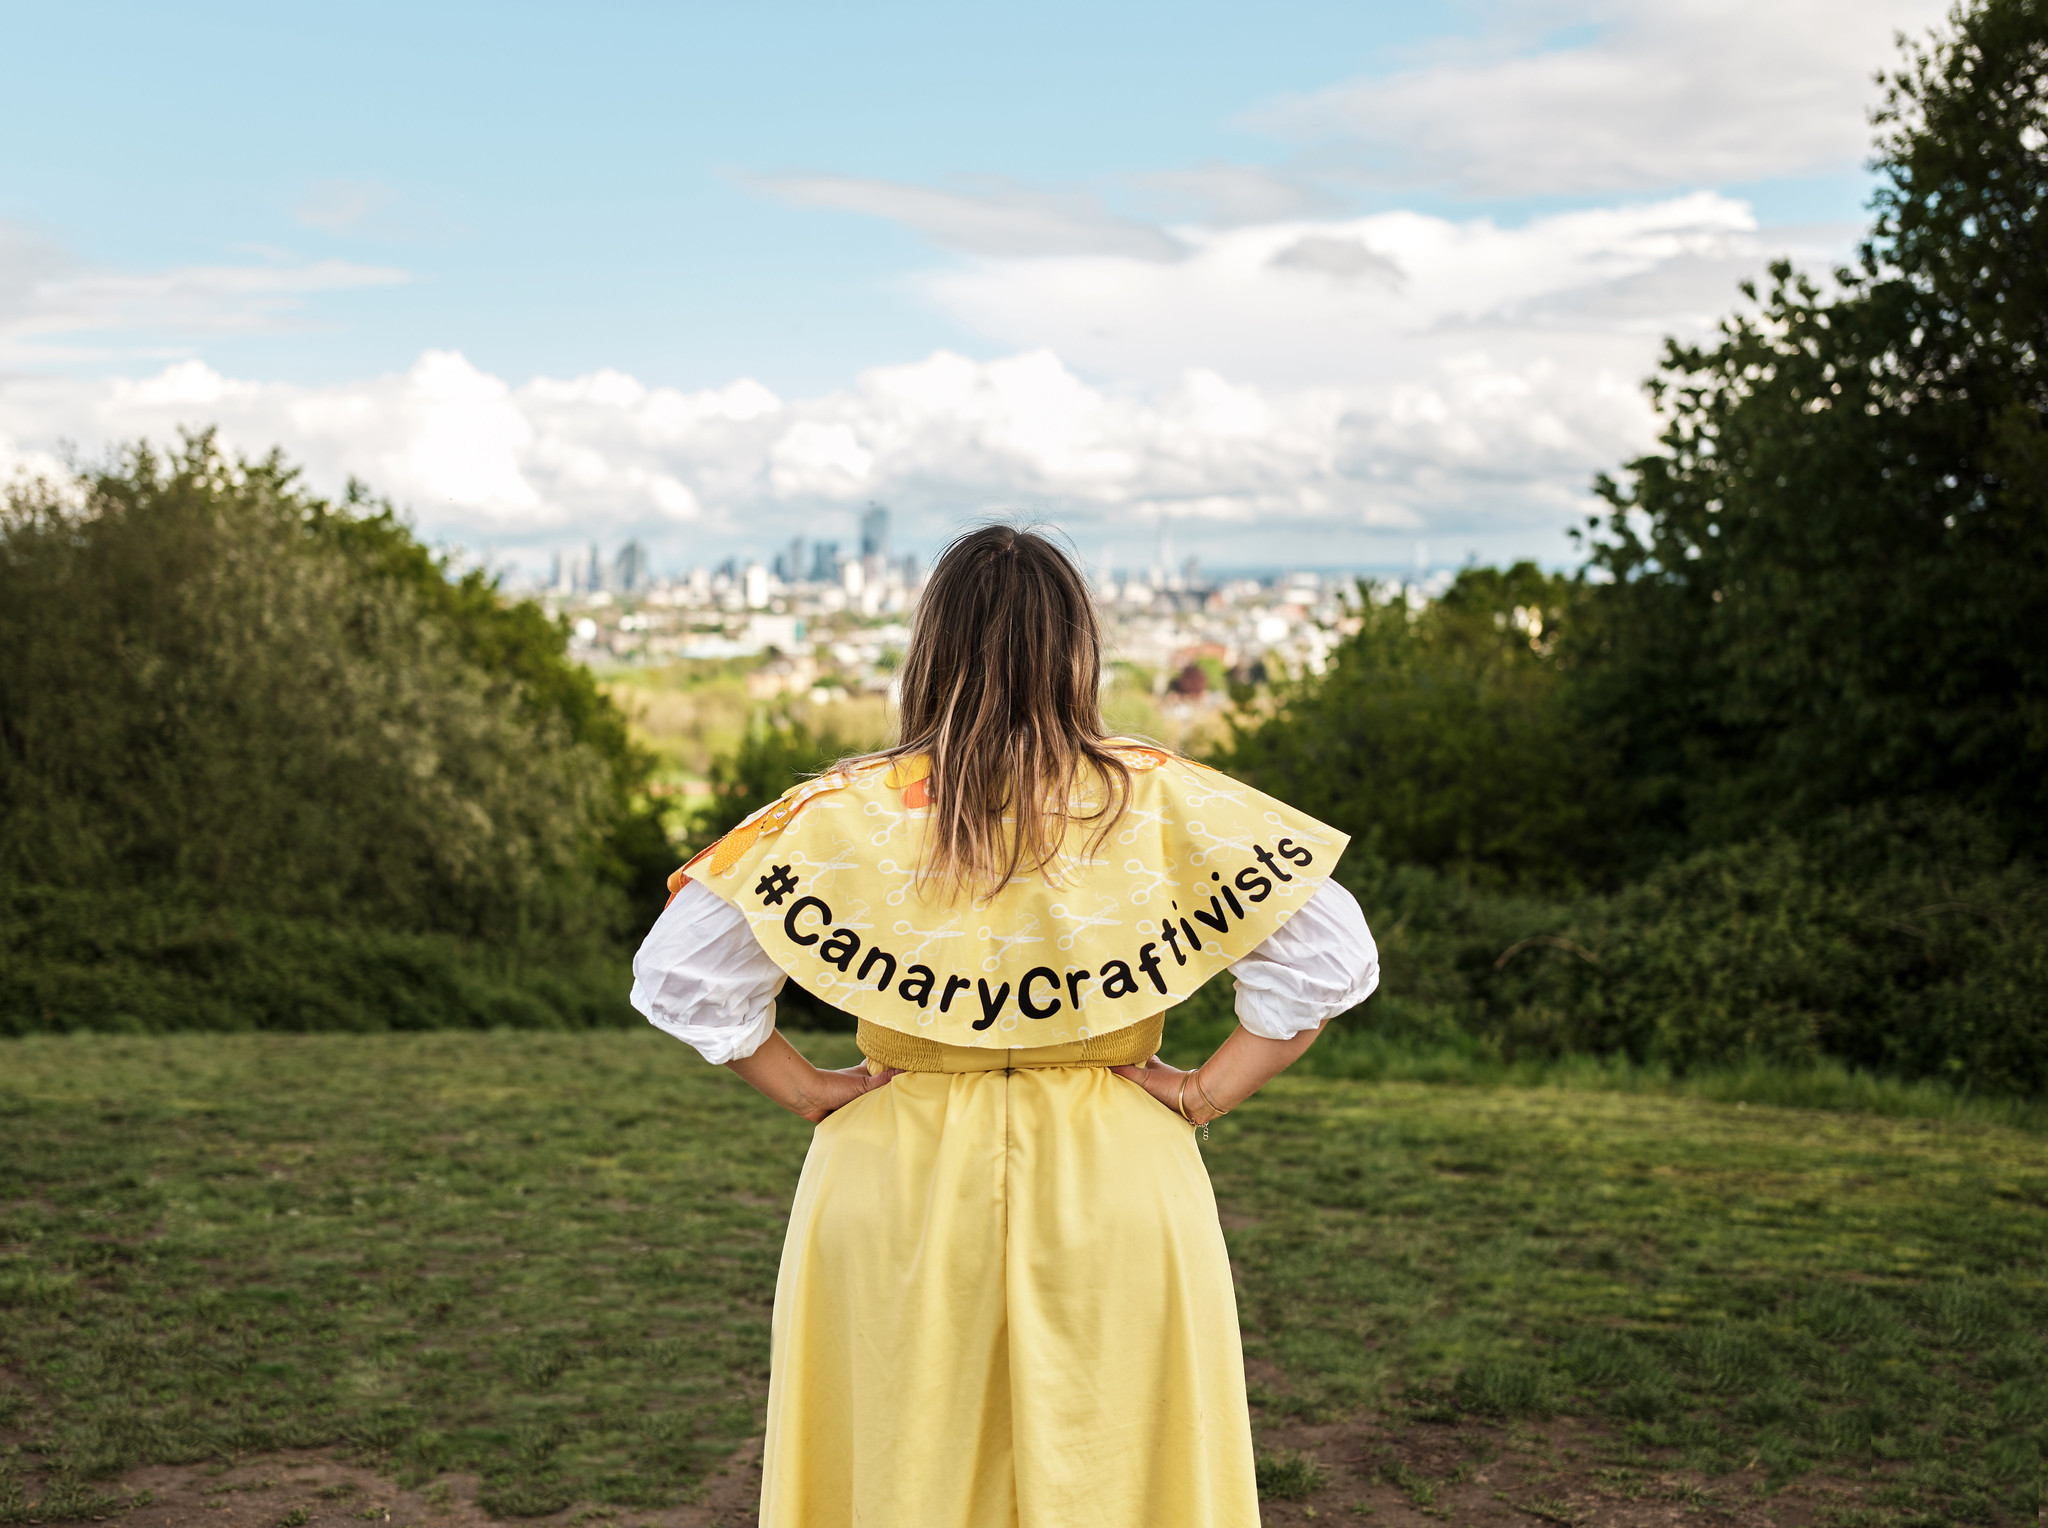 Join Canary Craftivists: a climate campaign for non-activists and crafters